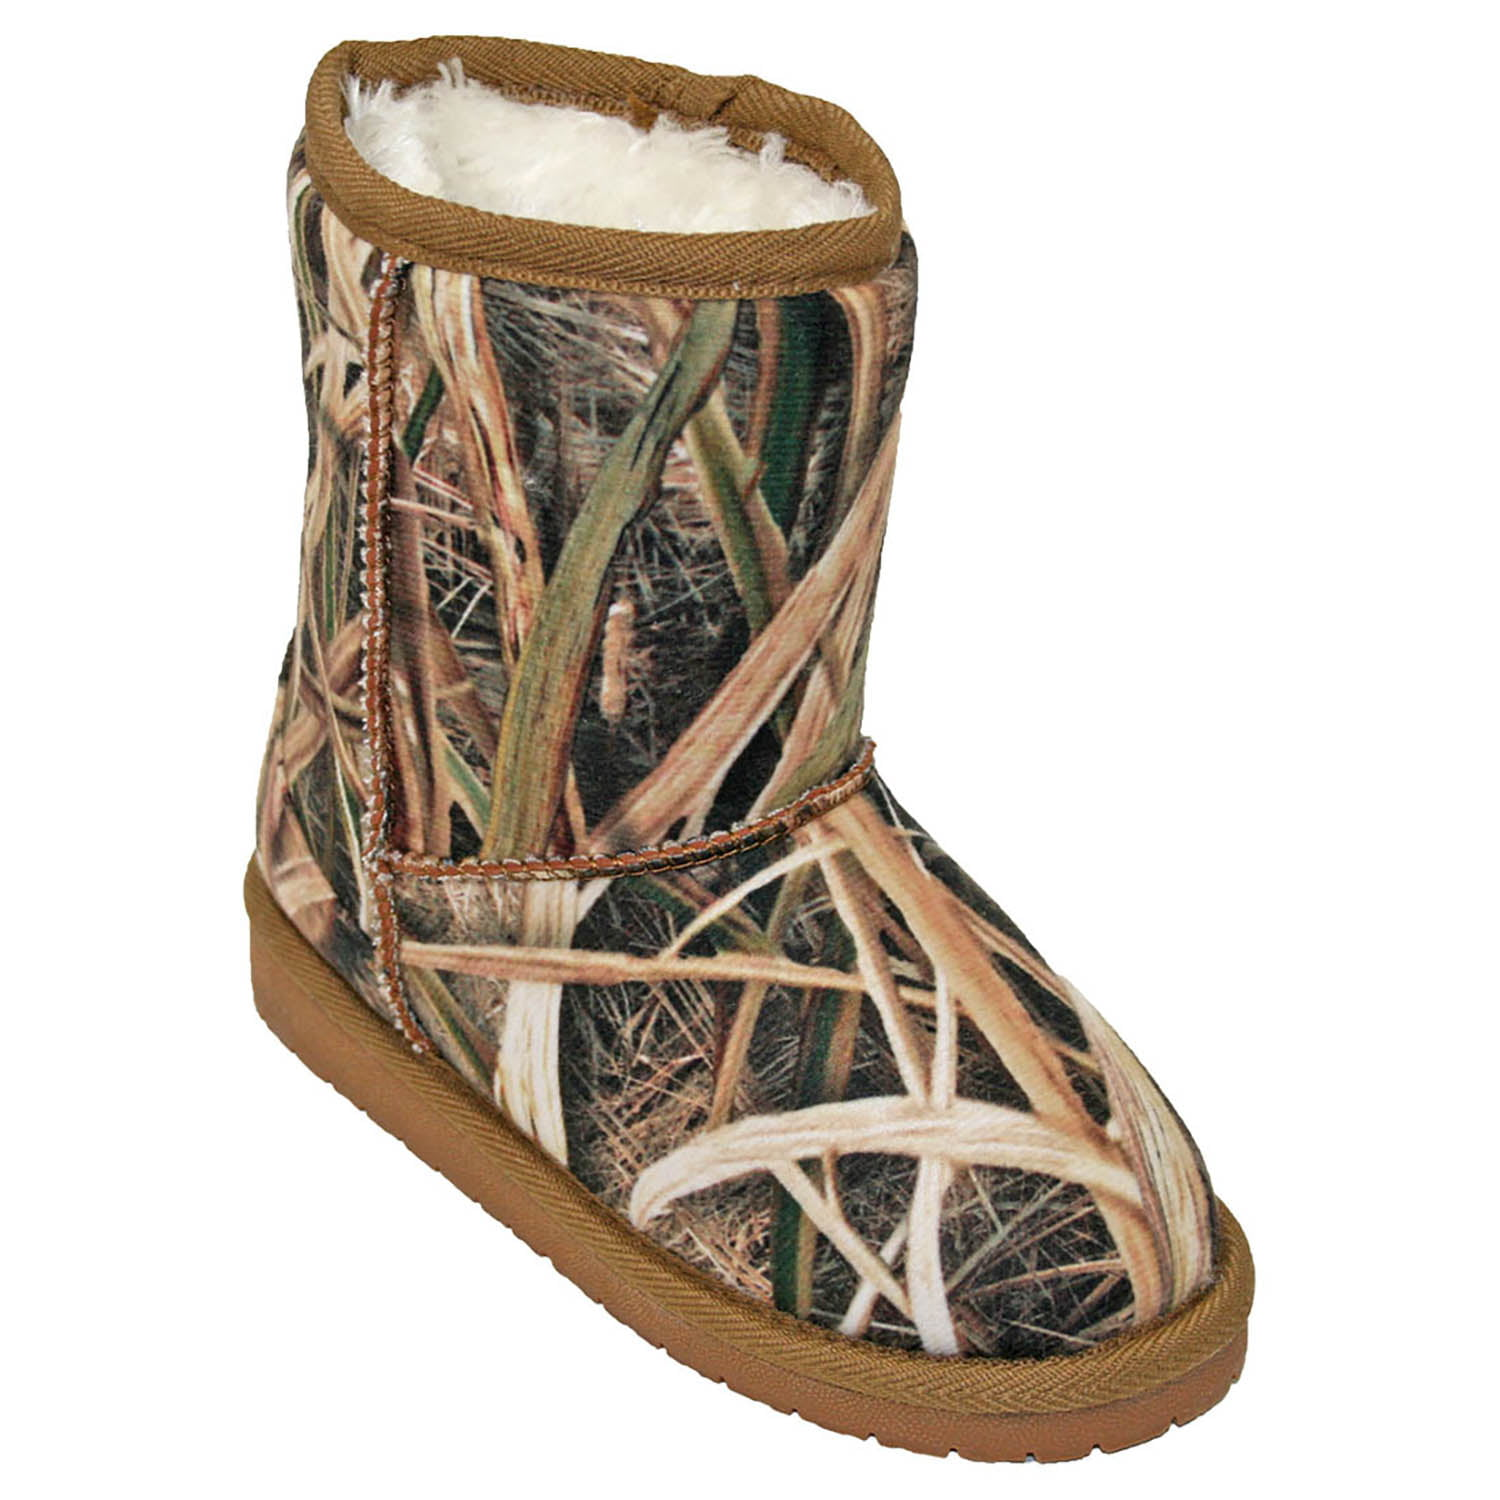 Toddlers' Mossy Oak Boots SG Blades Size 6-7